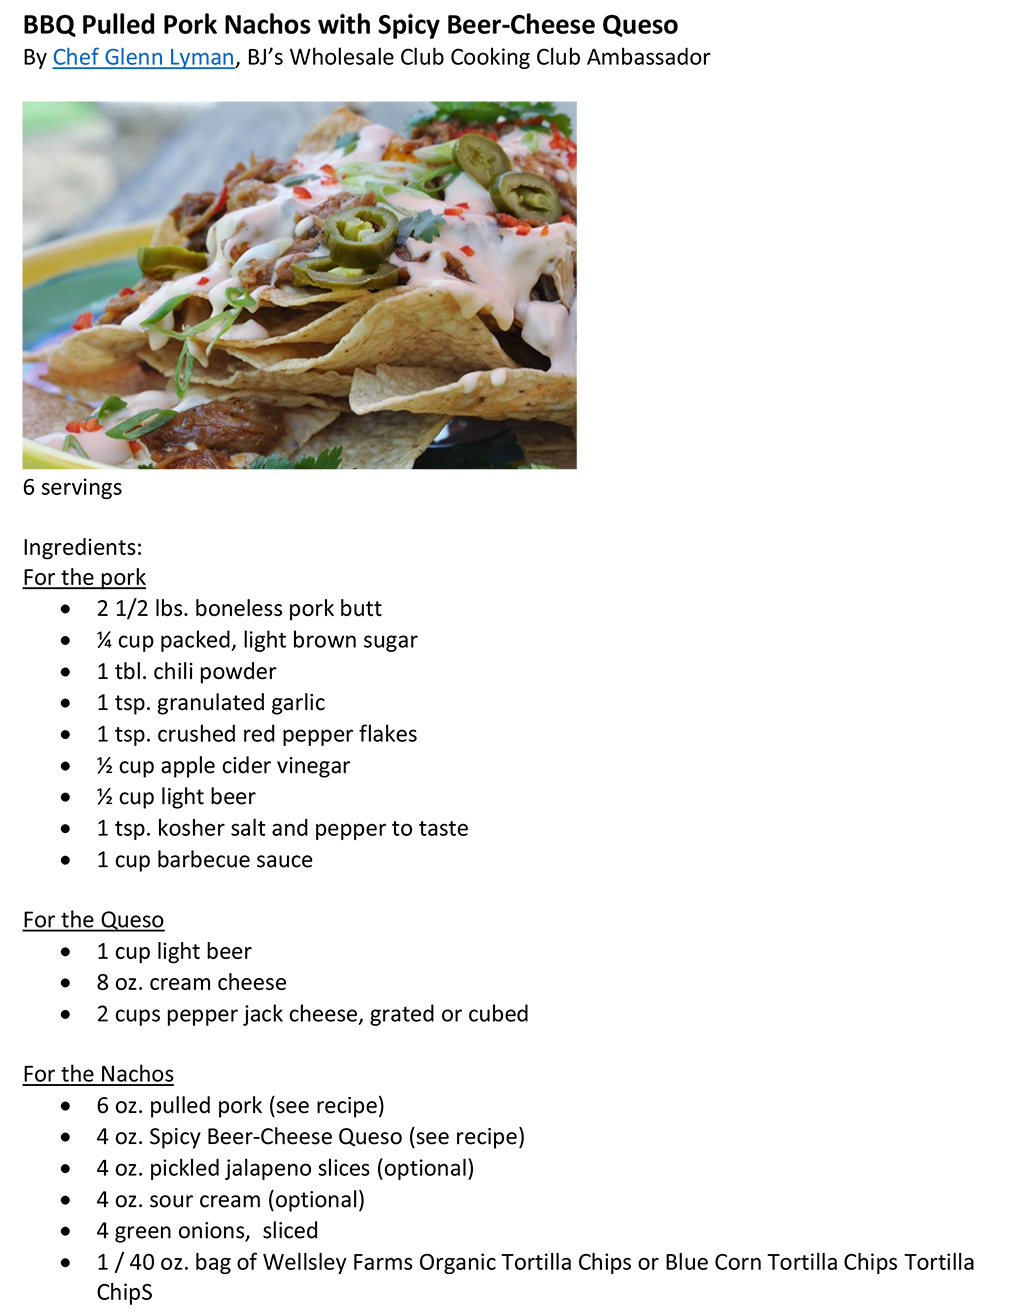 BBQ Pulled Pork Nachos with Spicy-Beer Queso Dip